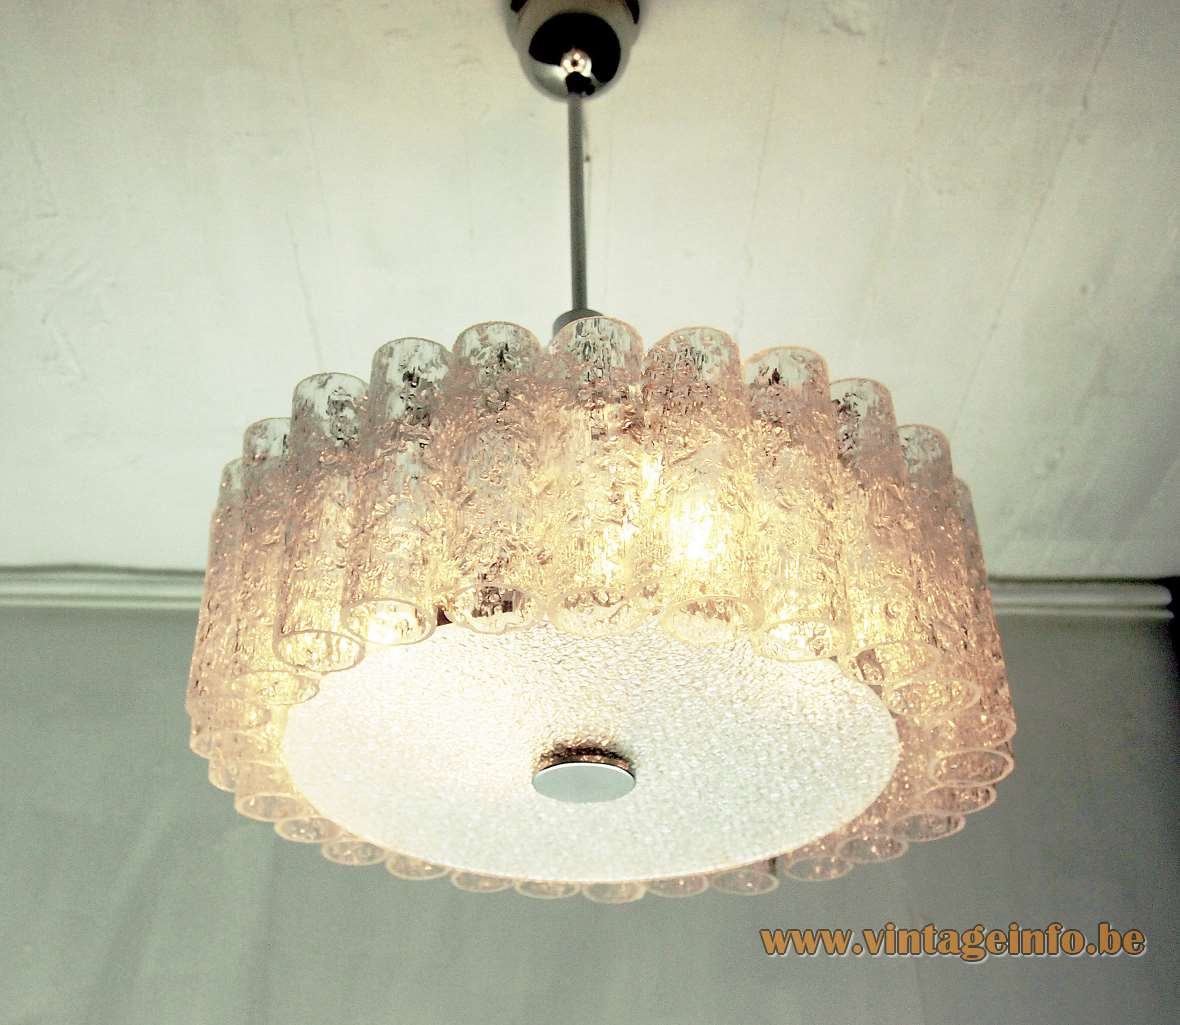 DORIA crystal glass tubes chandelier round lampshade 27 pipes big disc chrome frame Germany 1960s 1970s